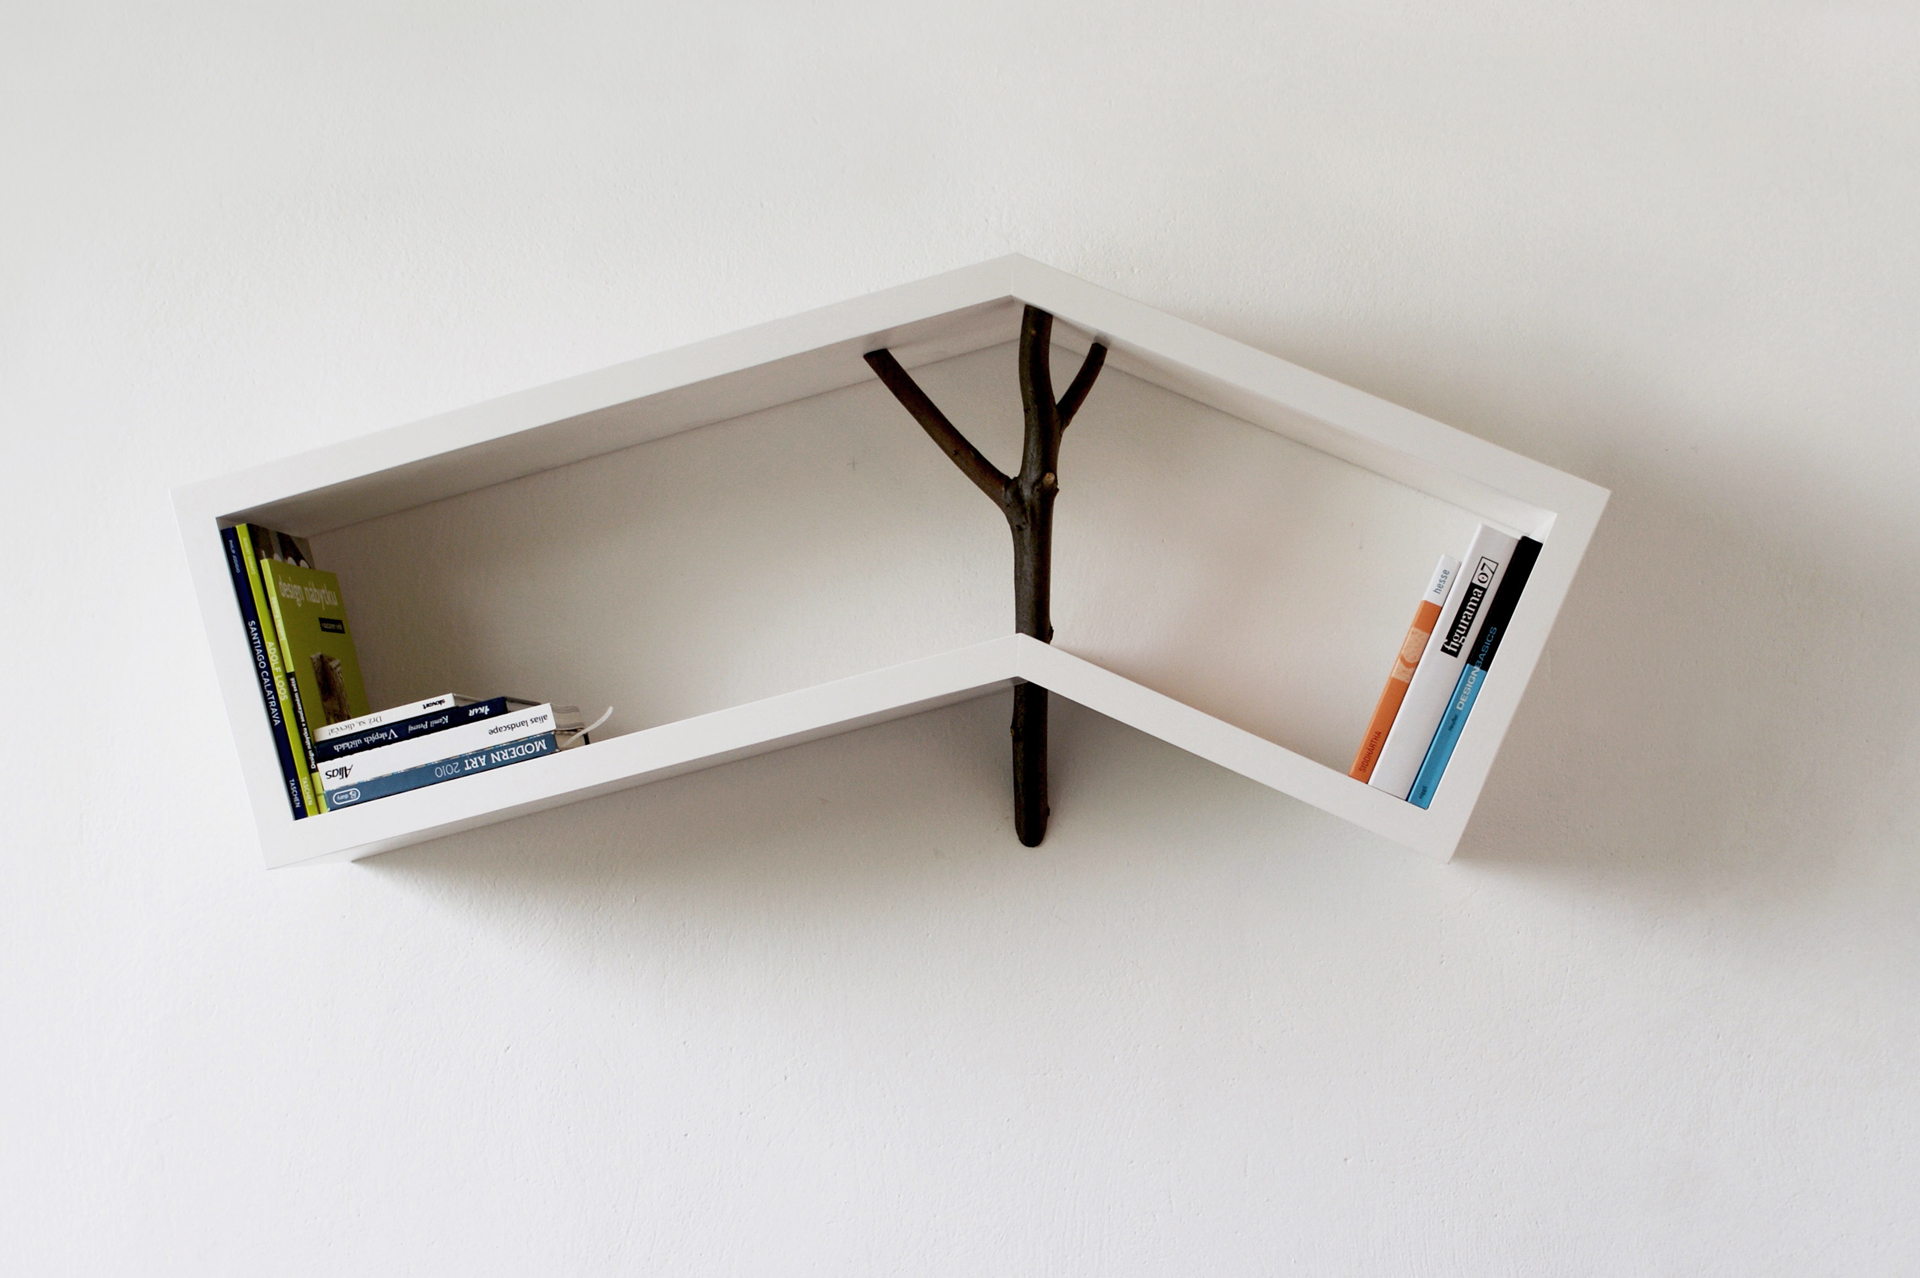 shelf, library, book shelf, design shelf, nature shelf, wood shelf, kniznica, polica, nastenna polica, prirodna kniznica, dizajn kniznice, objekt, nature bookshelf, veronika paluchova, designer, product, dizajner